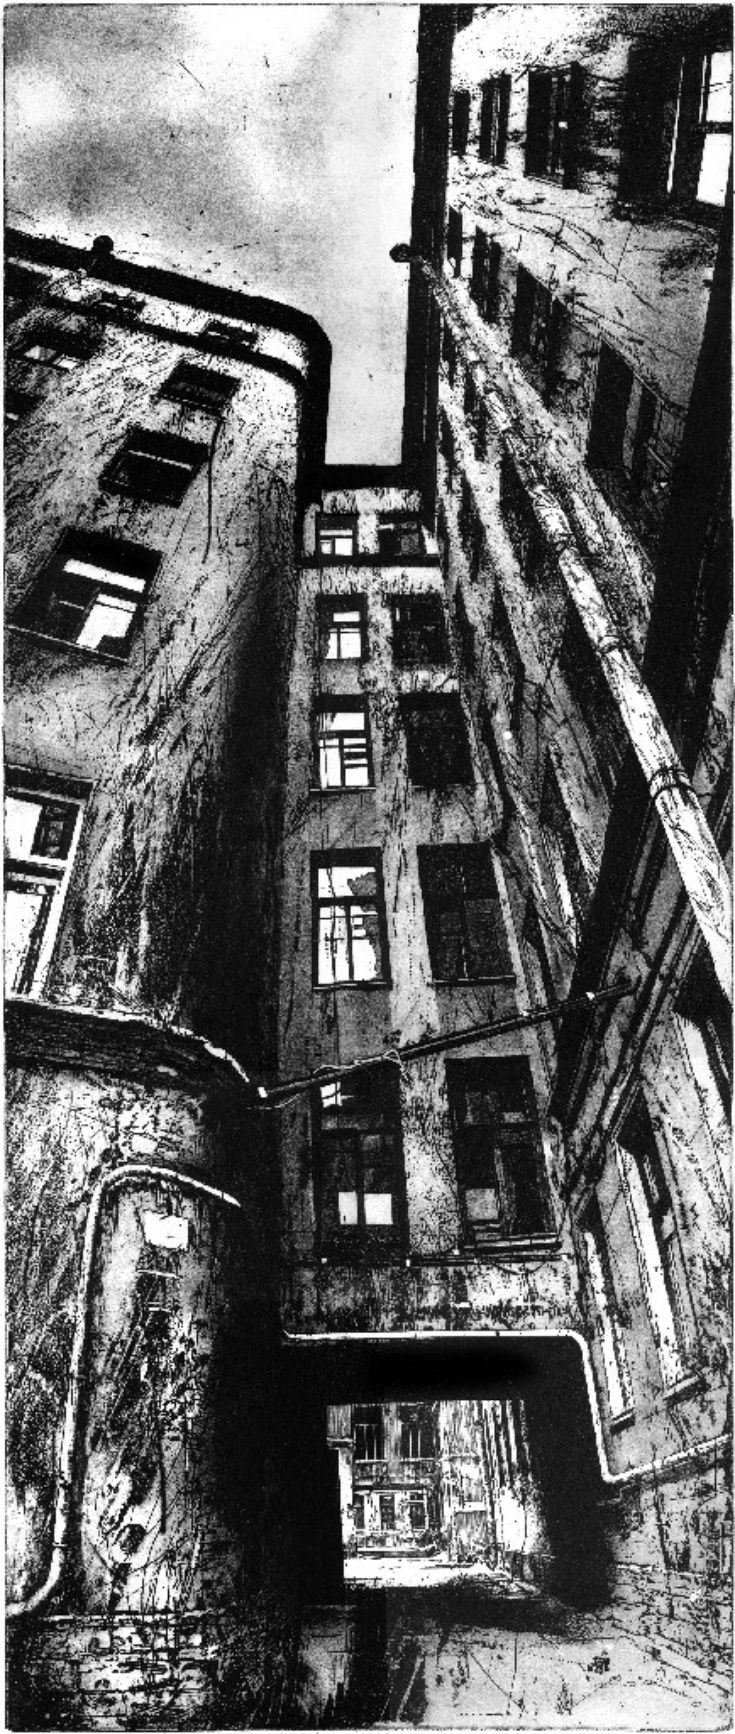 ARTFINDER: Familiar Place by Michael Goro - etching/engraving